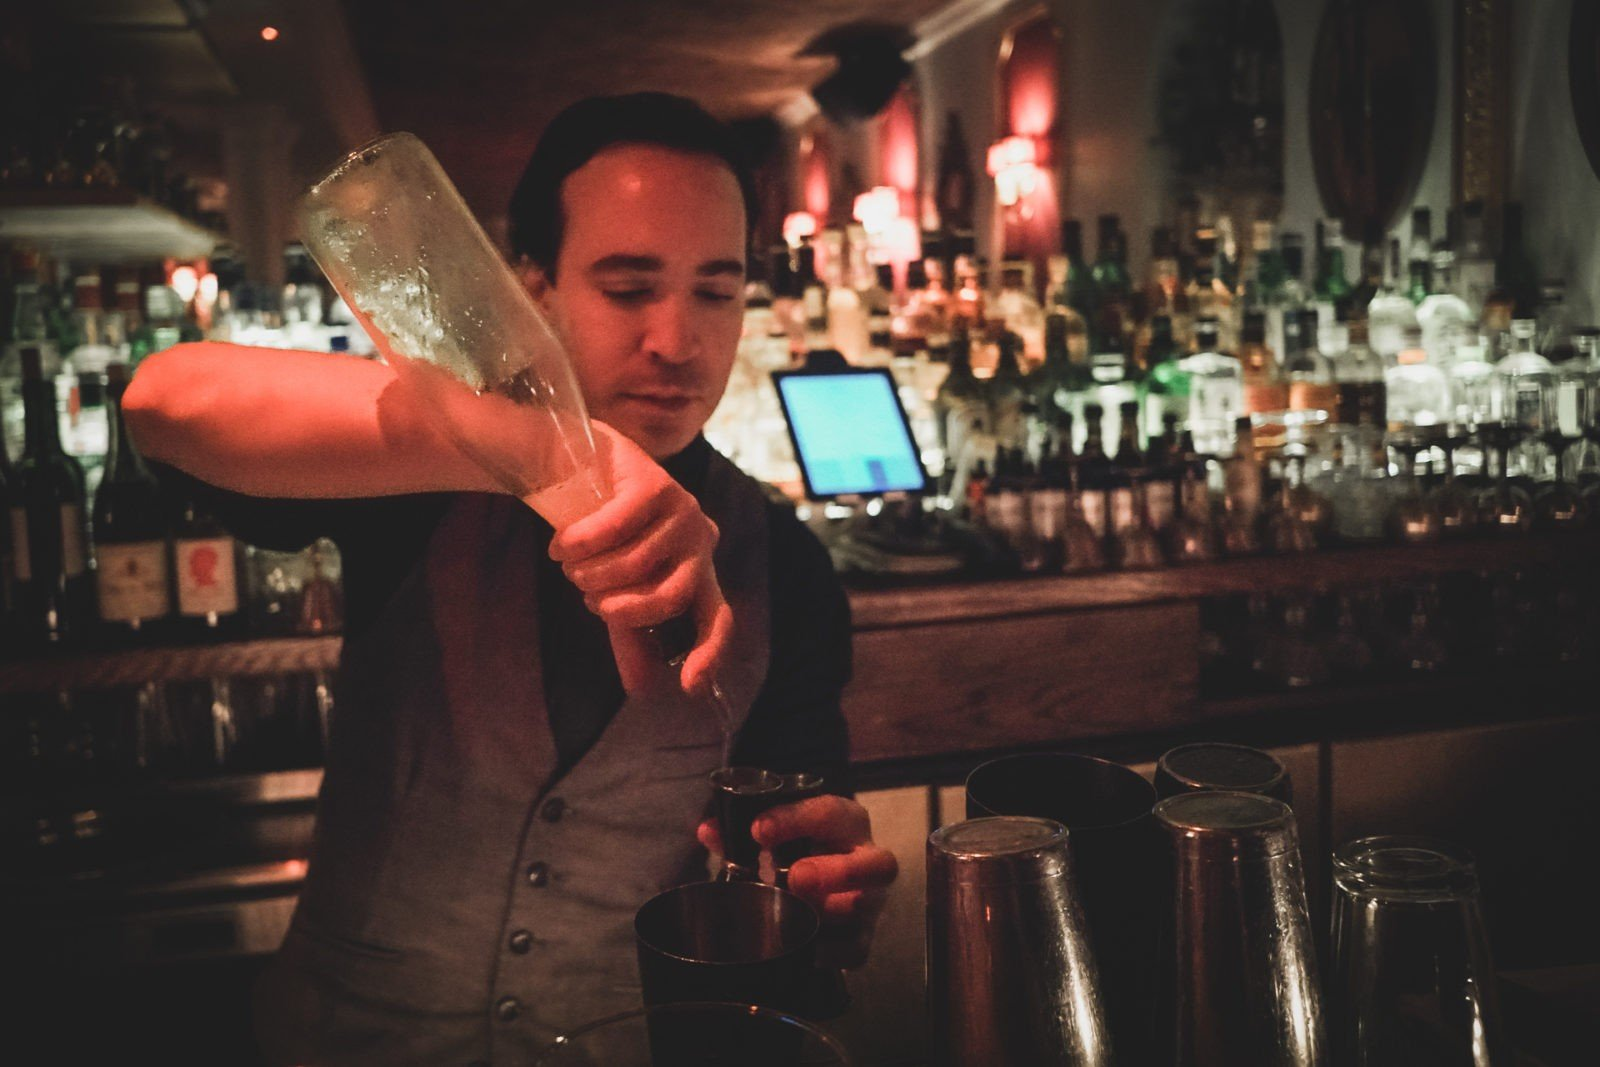 Ian, The head bartender of Le Boudoir